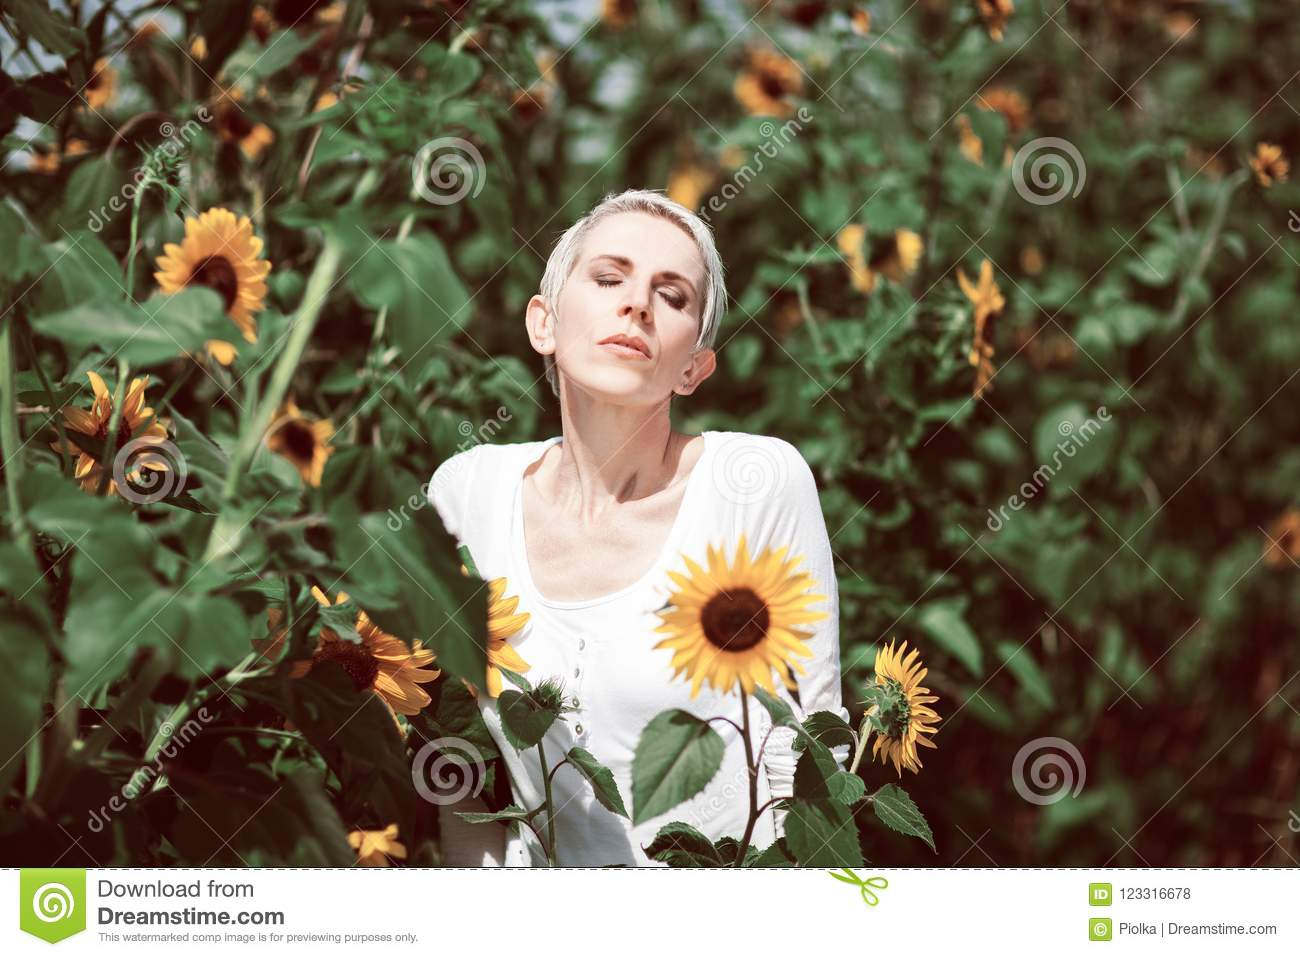 Beautiful middle age woman in a rural field scene outdoors with sunflowers